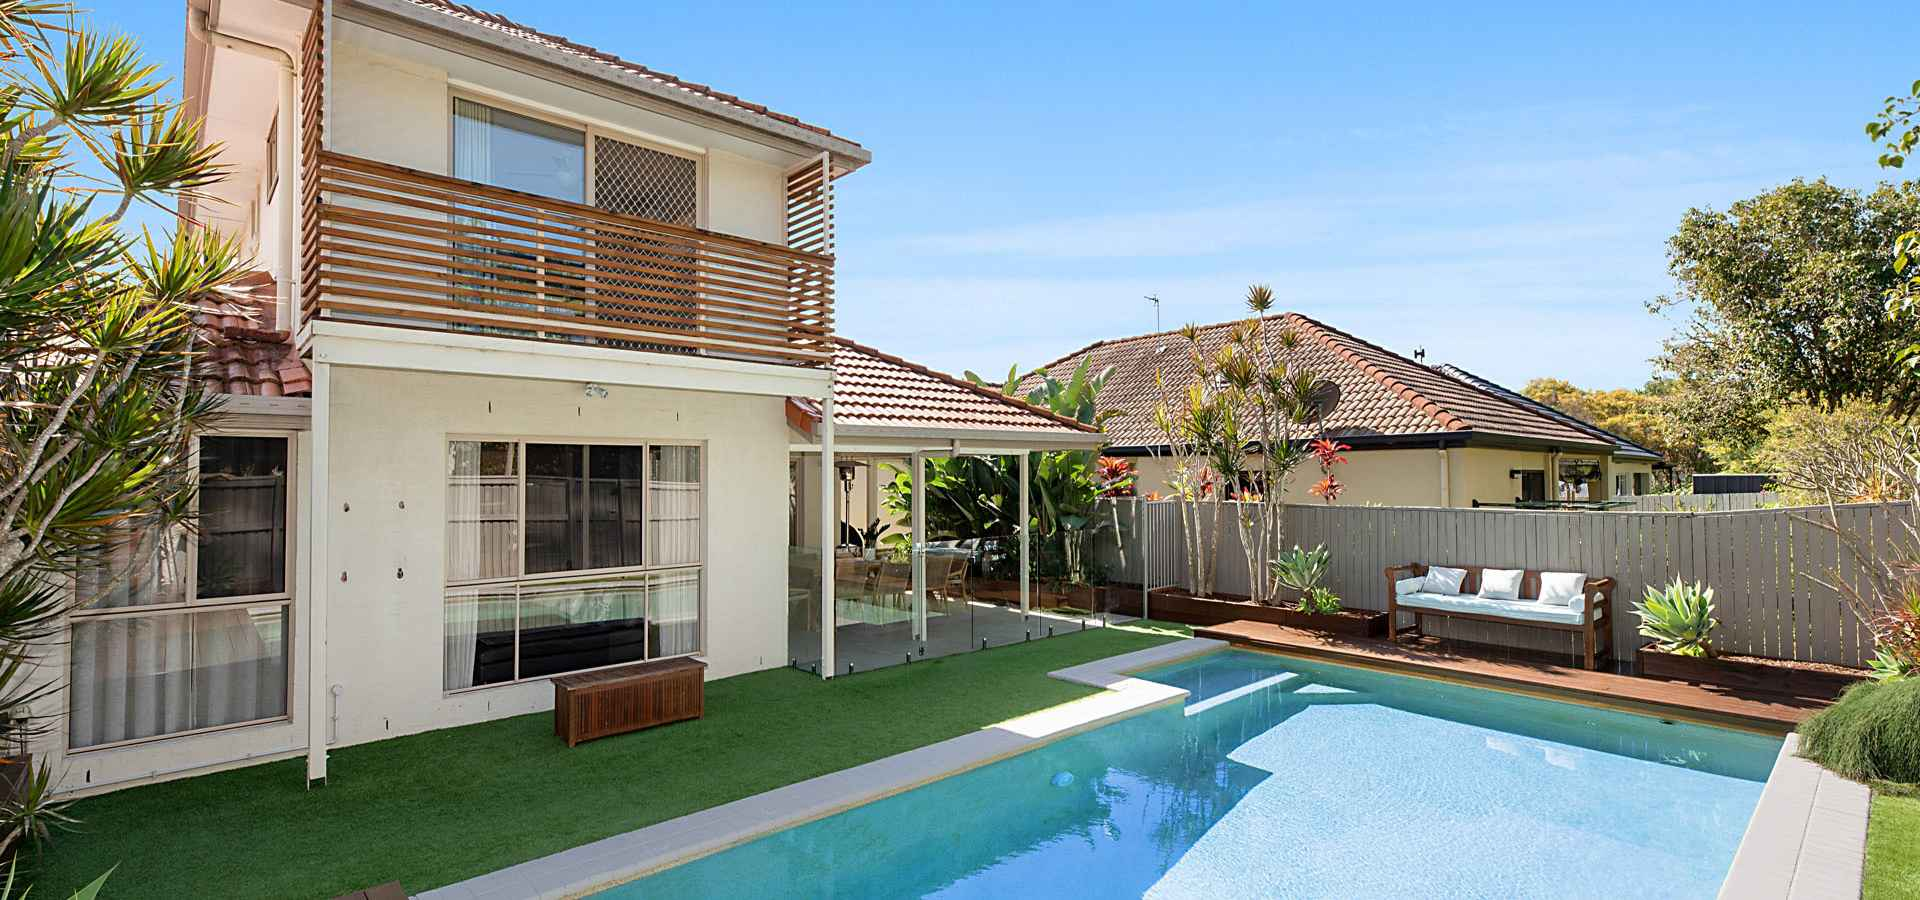 LOCATION AND LIFESTYLE WITH TRANQUIL VIEWS